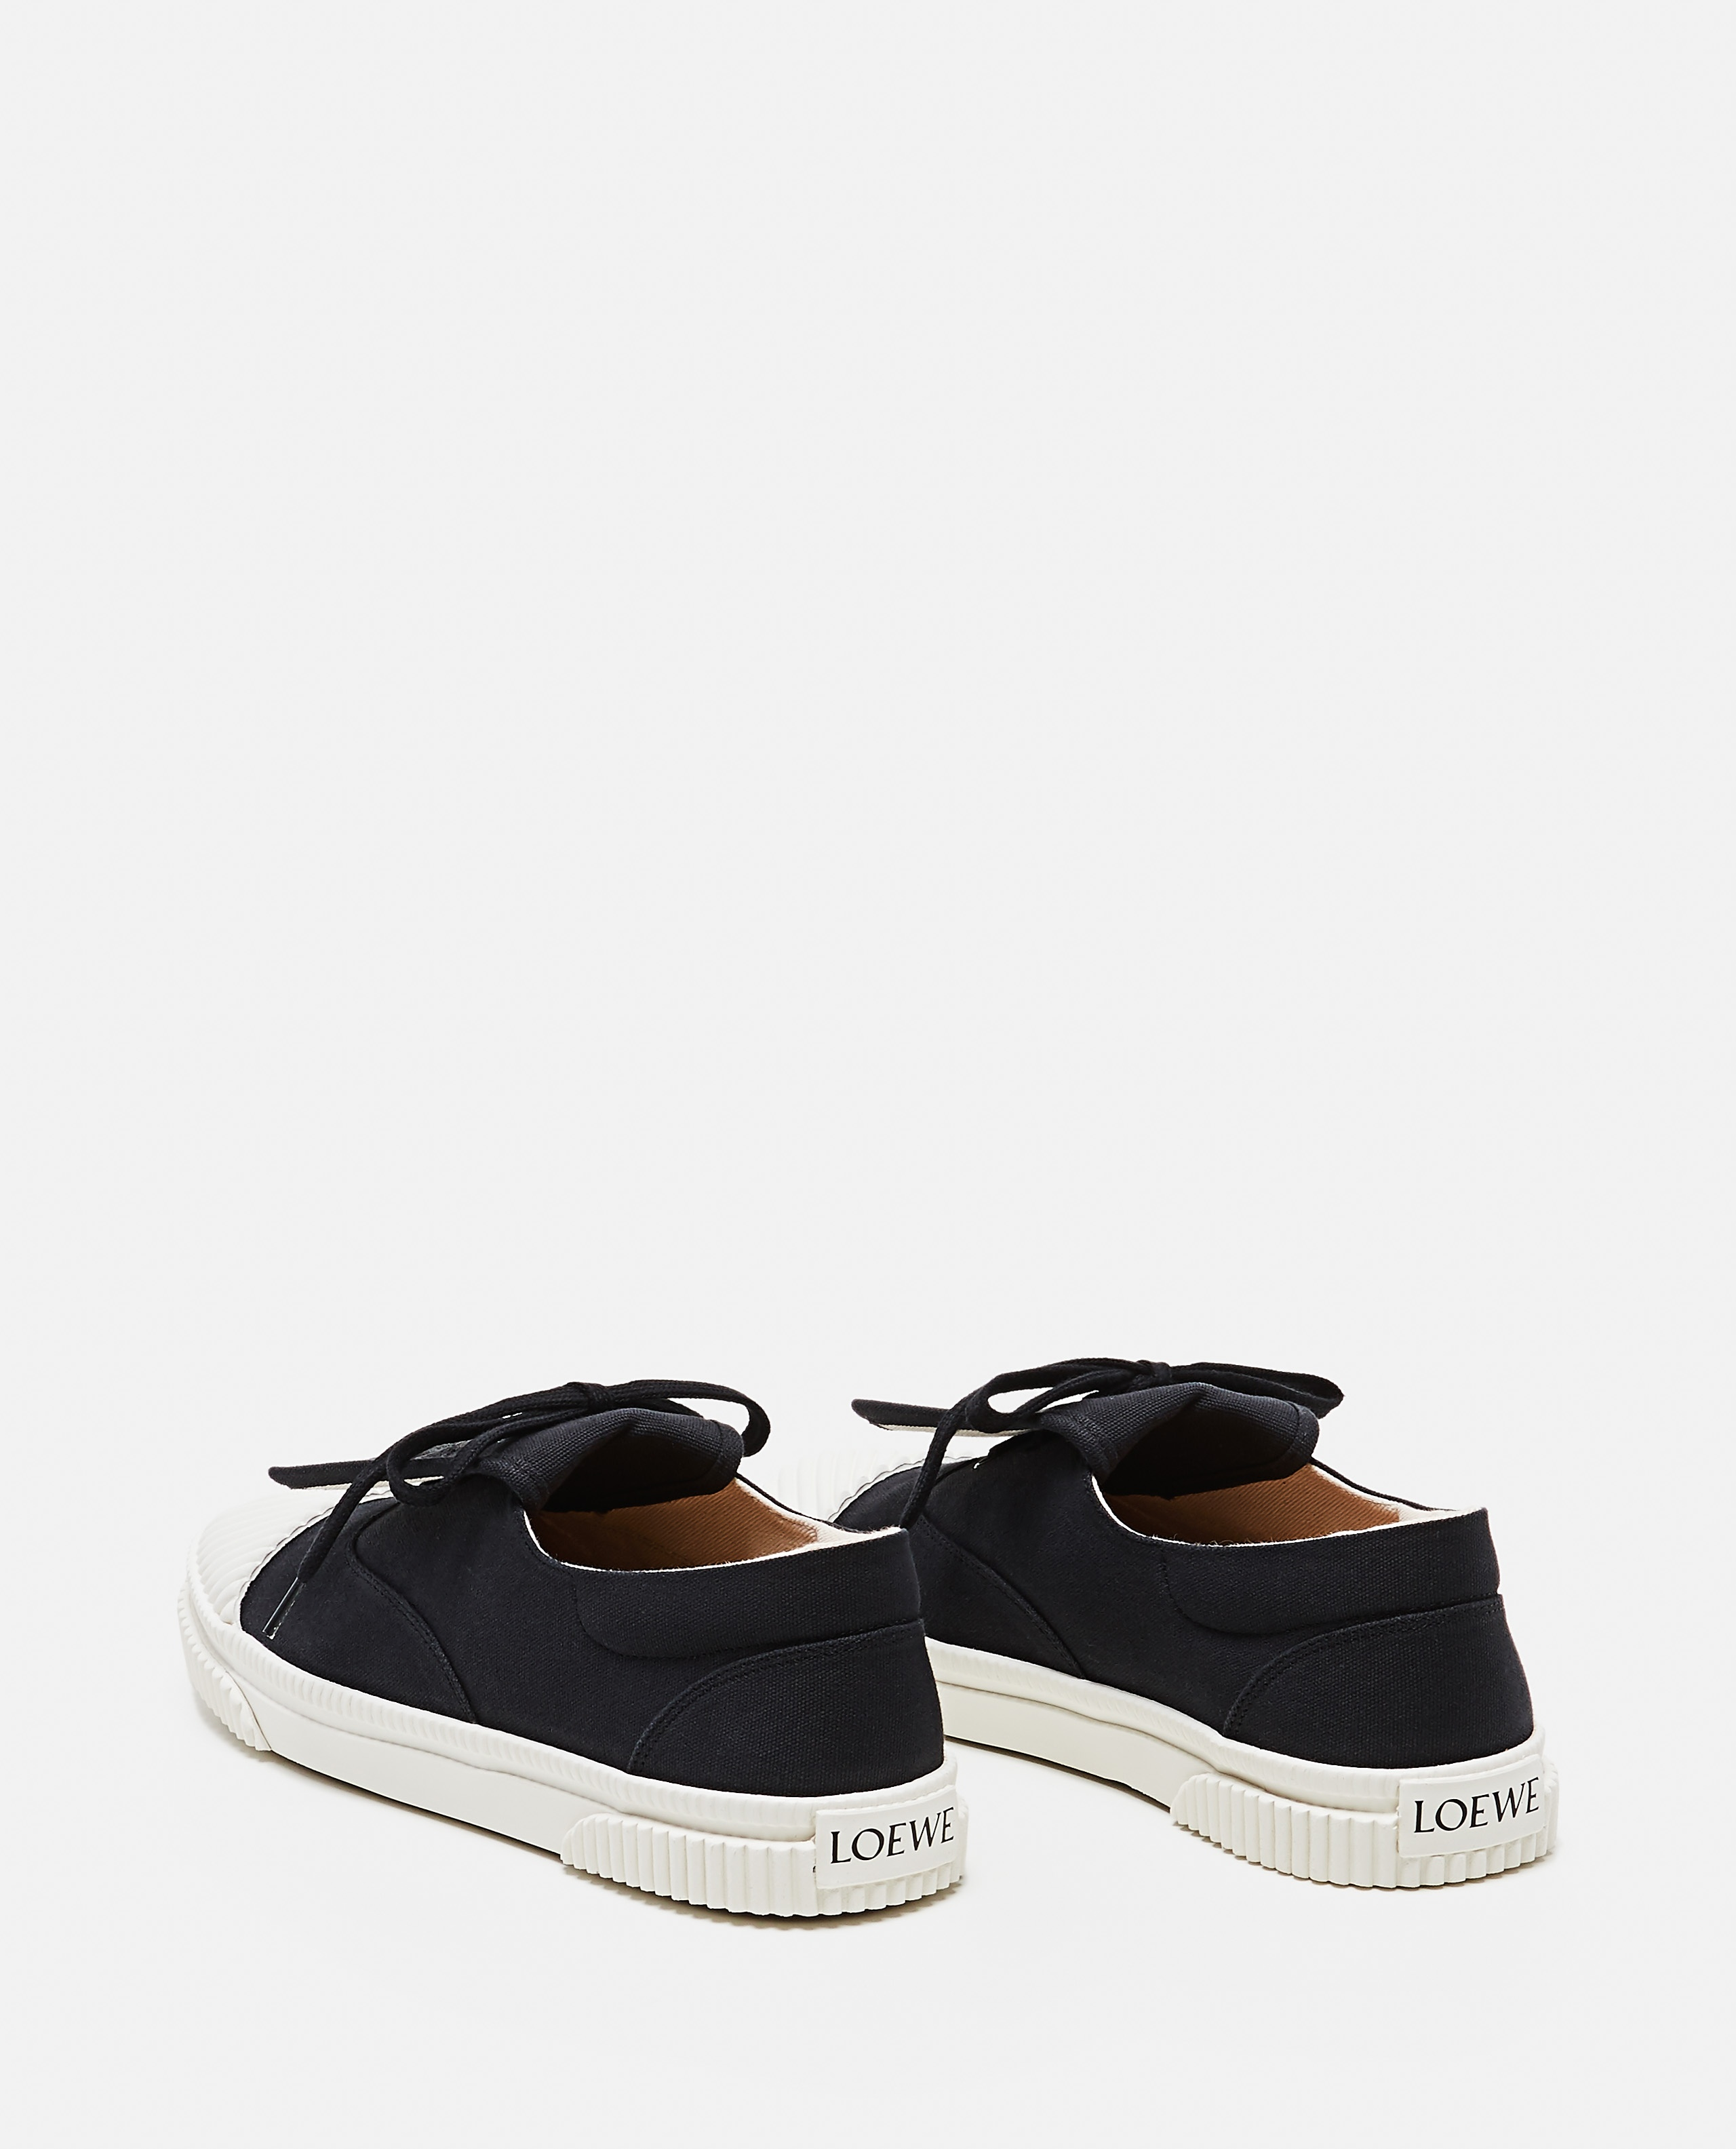 Sneaker con patta Anagram in tela Donna Loewe 000289270042586 3